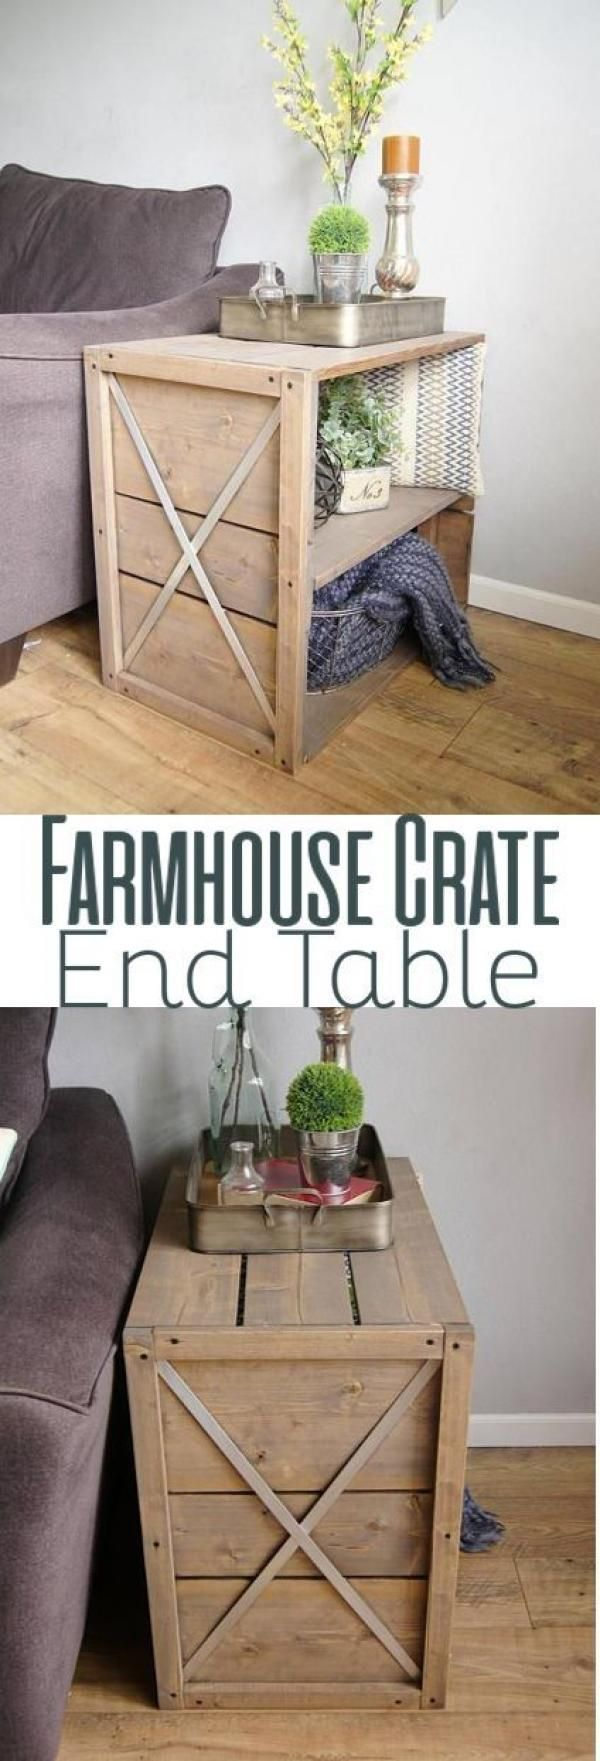 Creative DIY Side Table Ideas for Outdoors and Indoors